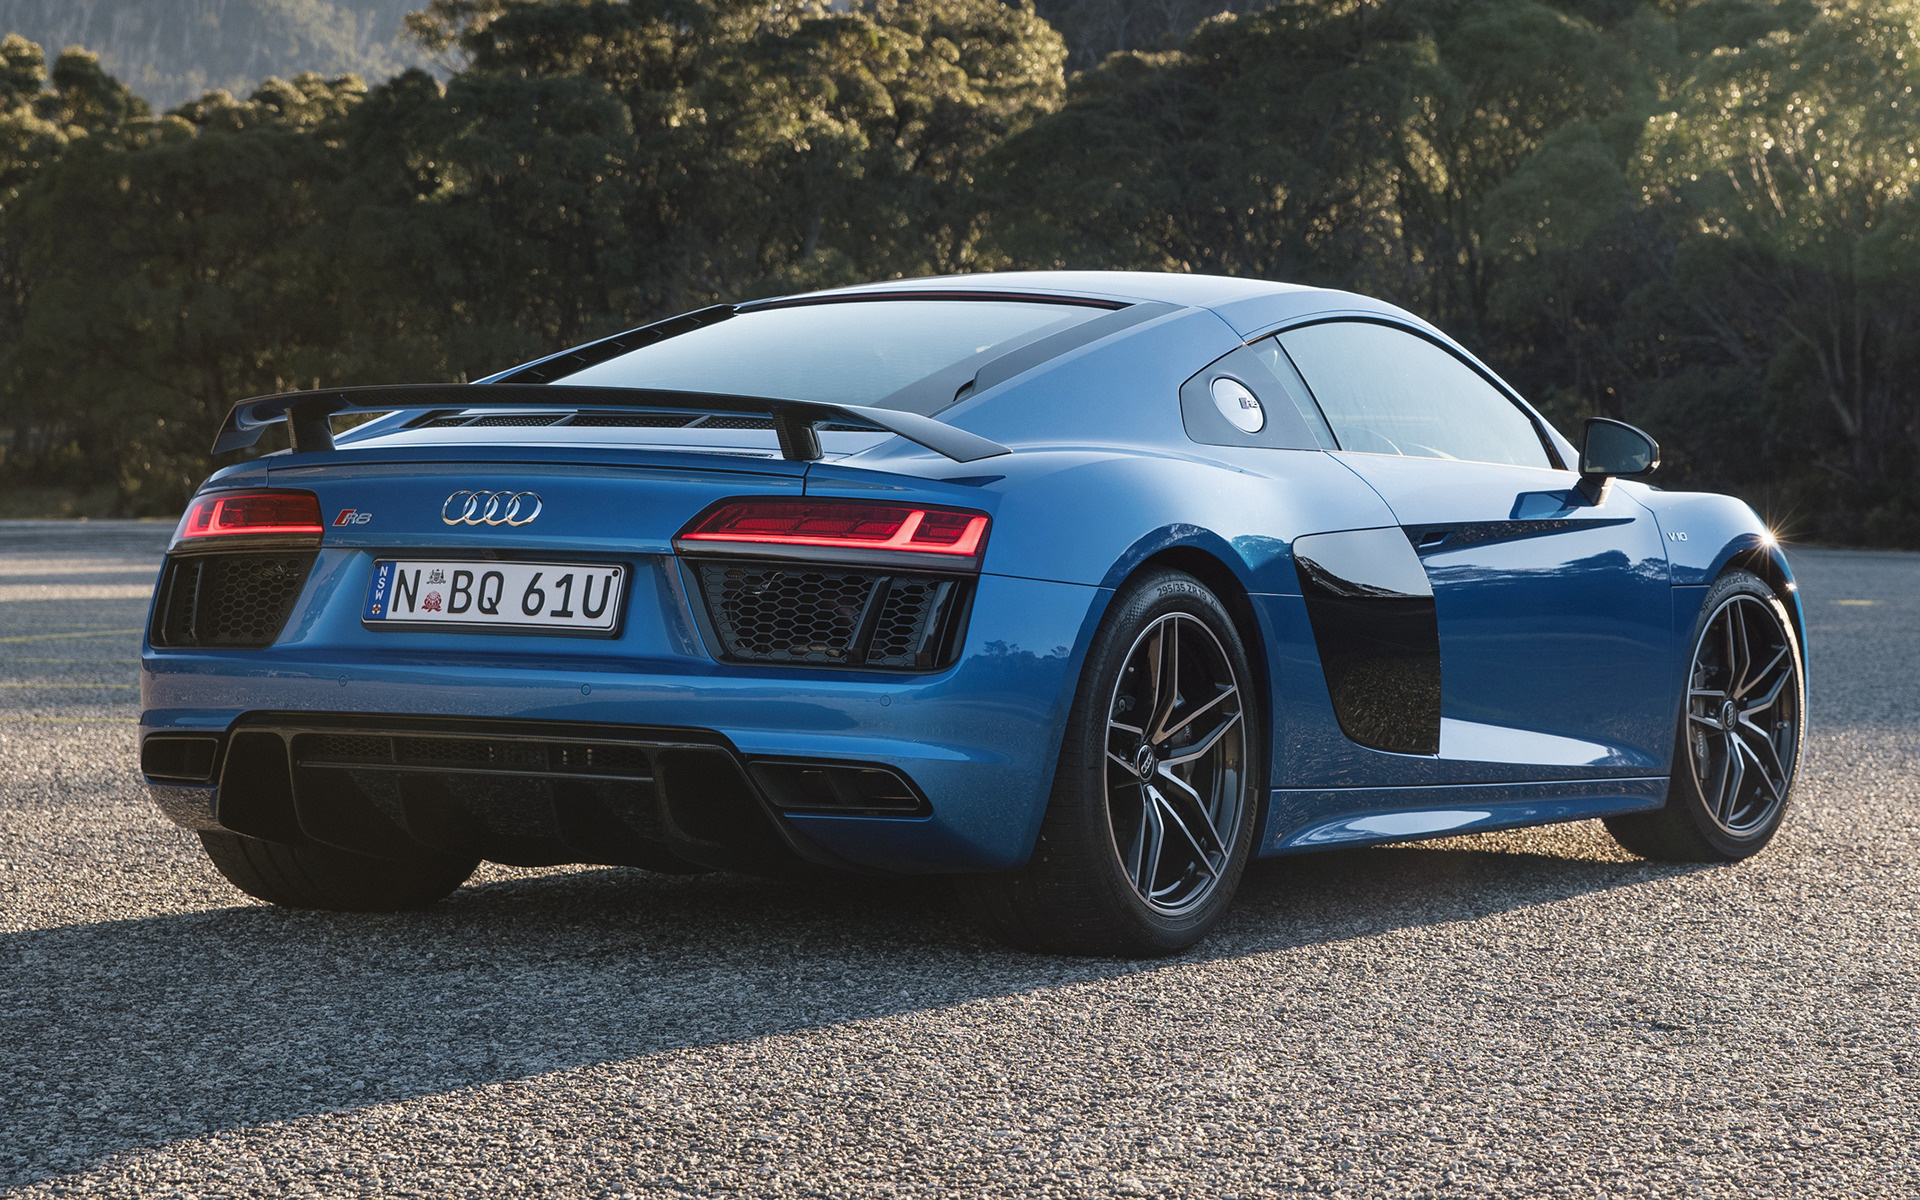 Audi R8 V10 plus 2016 AU Wallpapers and HD Images   Car 1920x1200